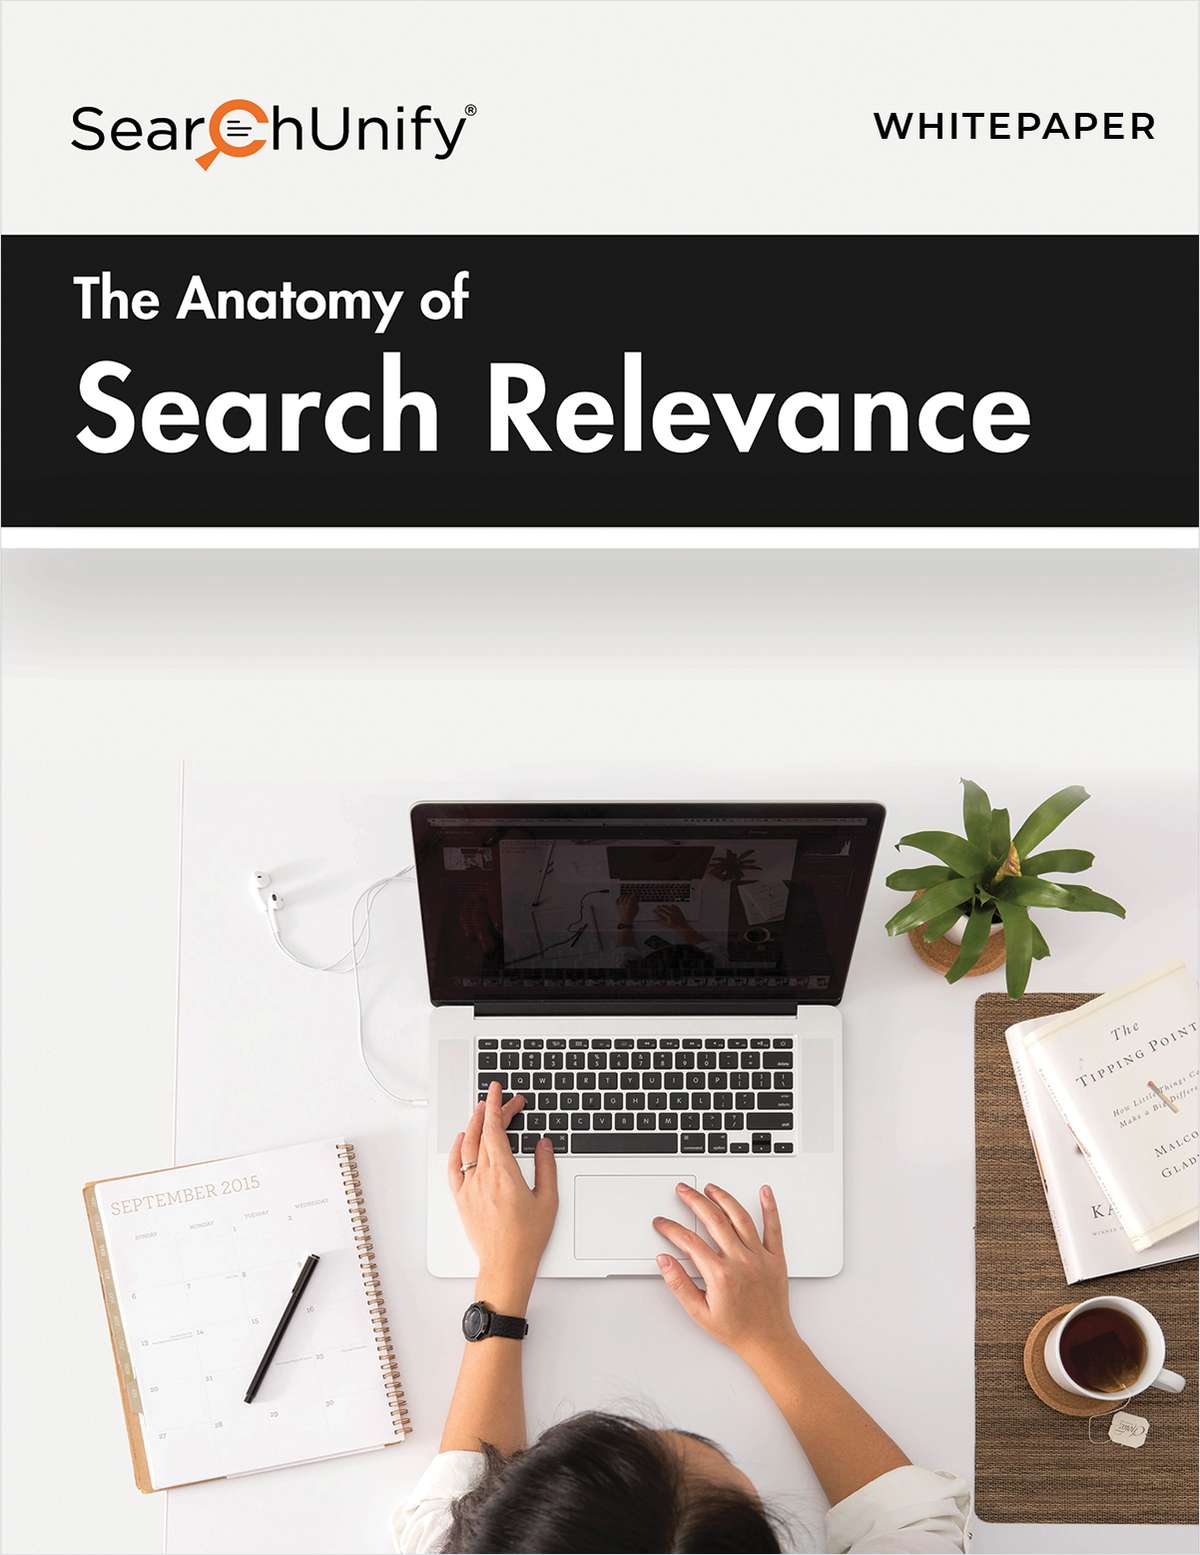 The Anatomy of Search Relevance